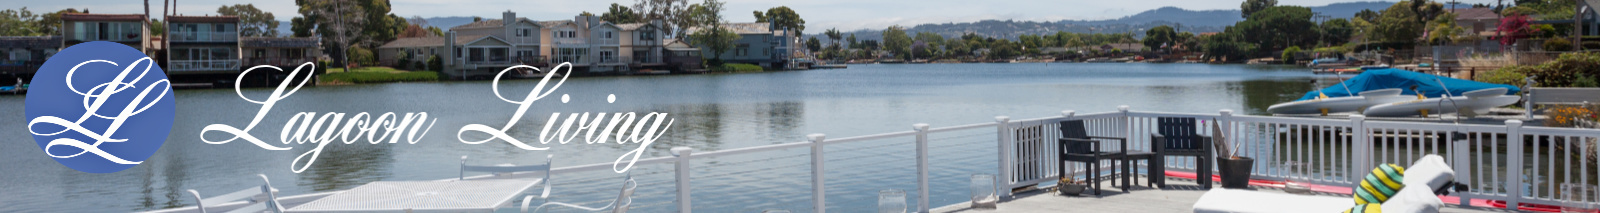 Community and Real Estate on the San Mateo Peninsula Lagoons